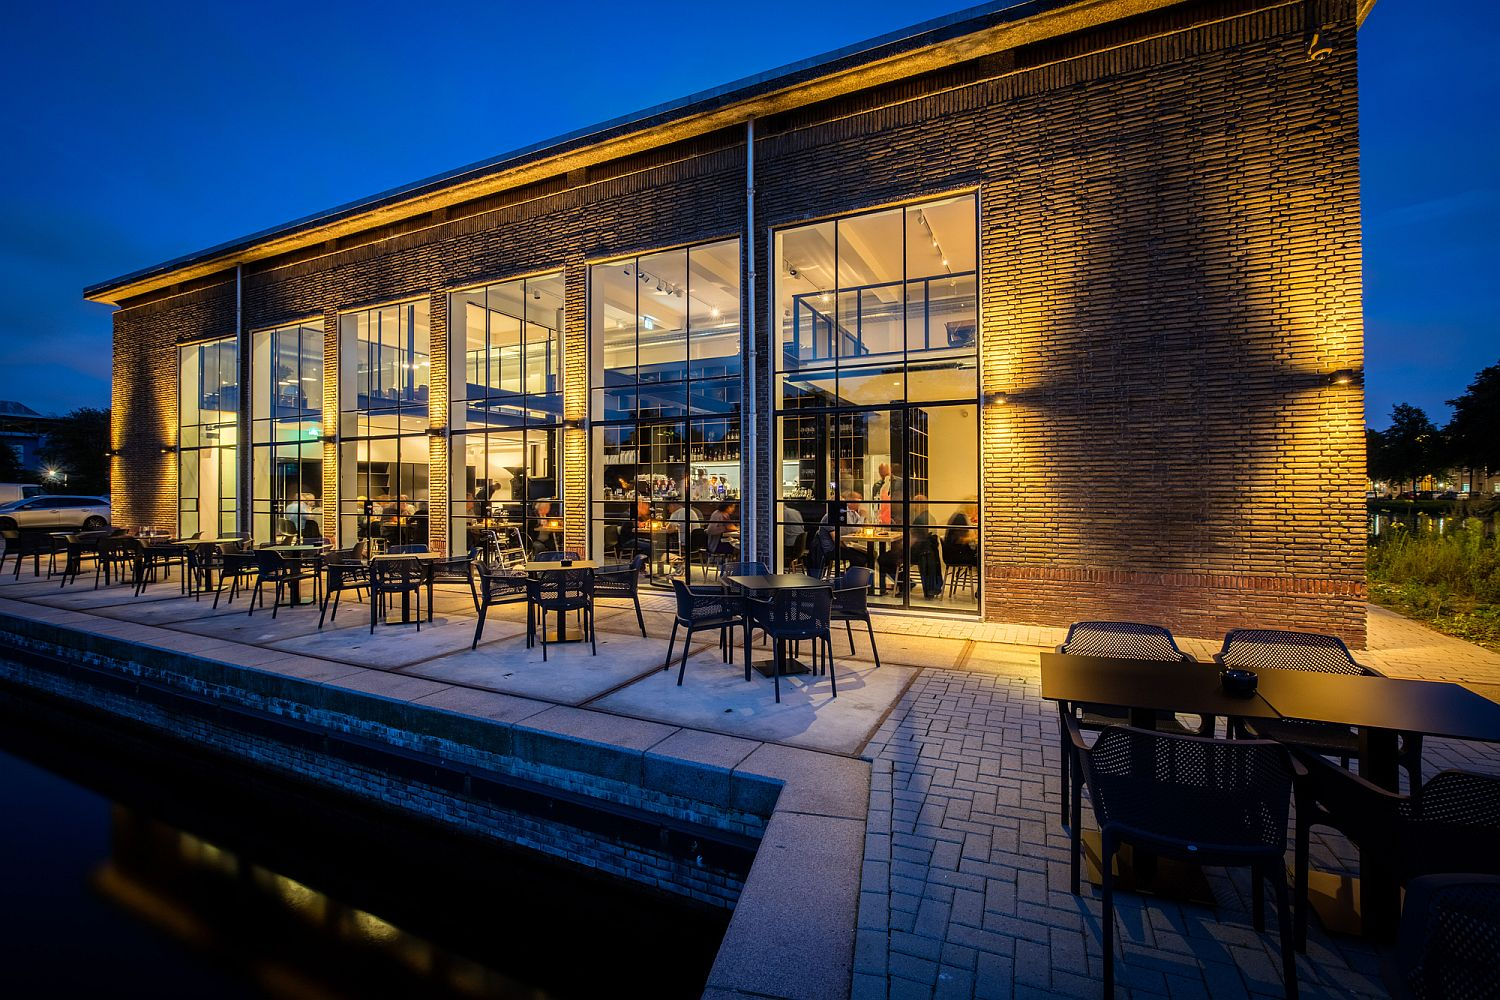 Outdoor-dining-experience-at-the-Capriole-Café